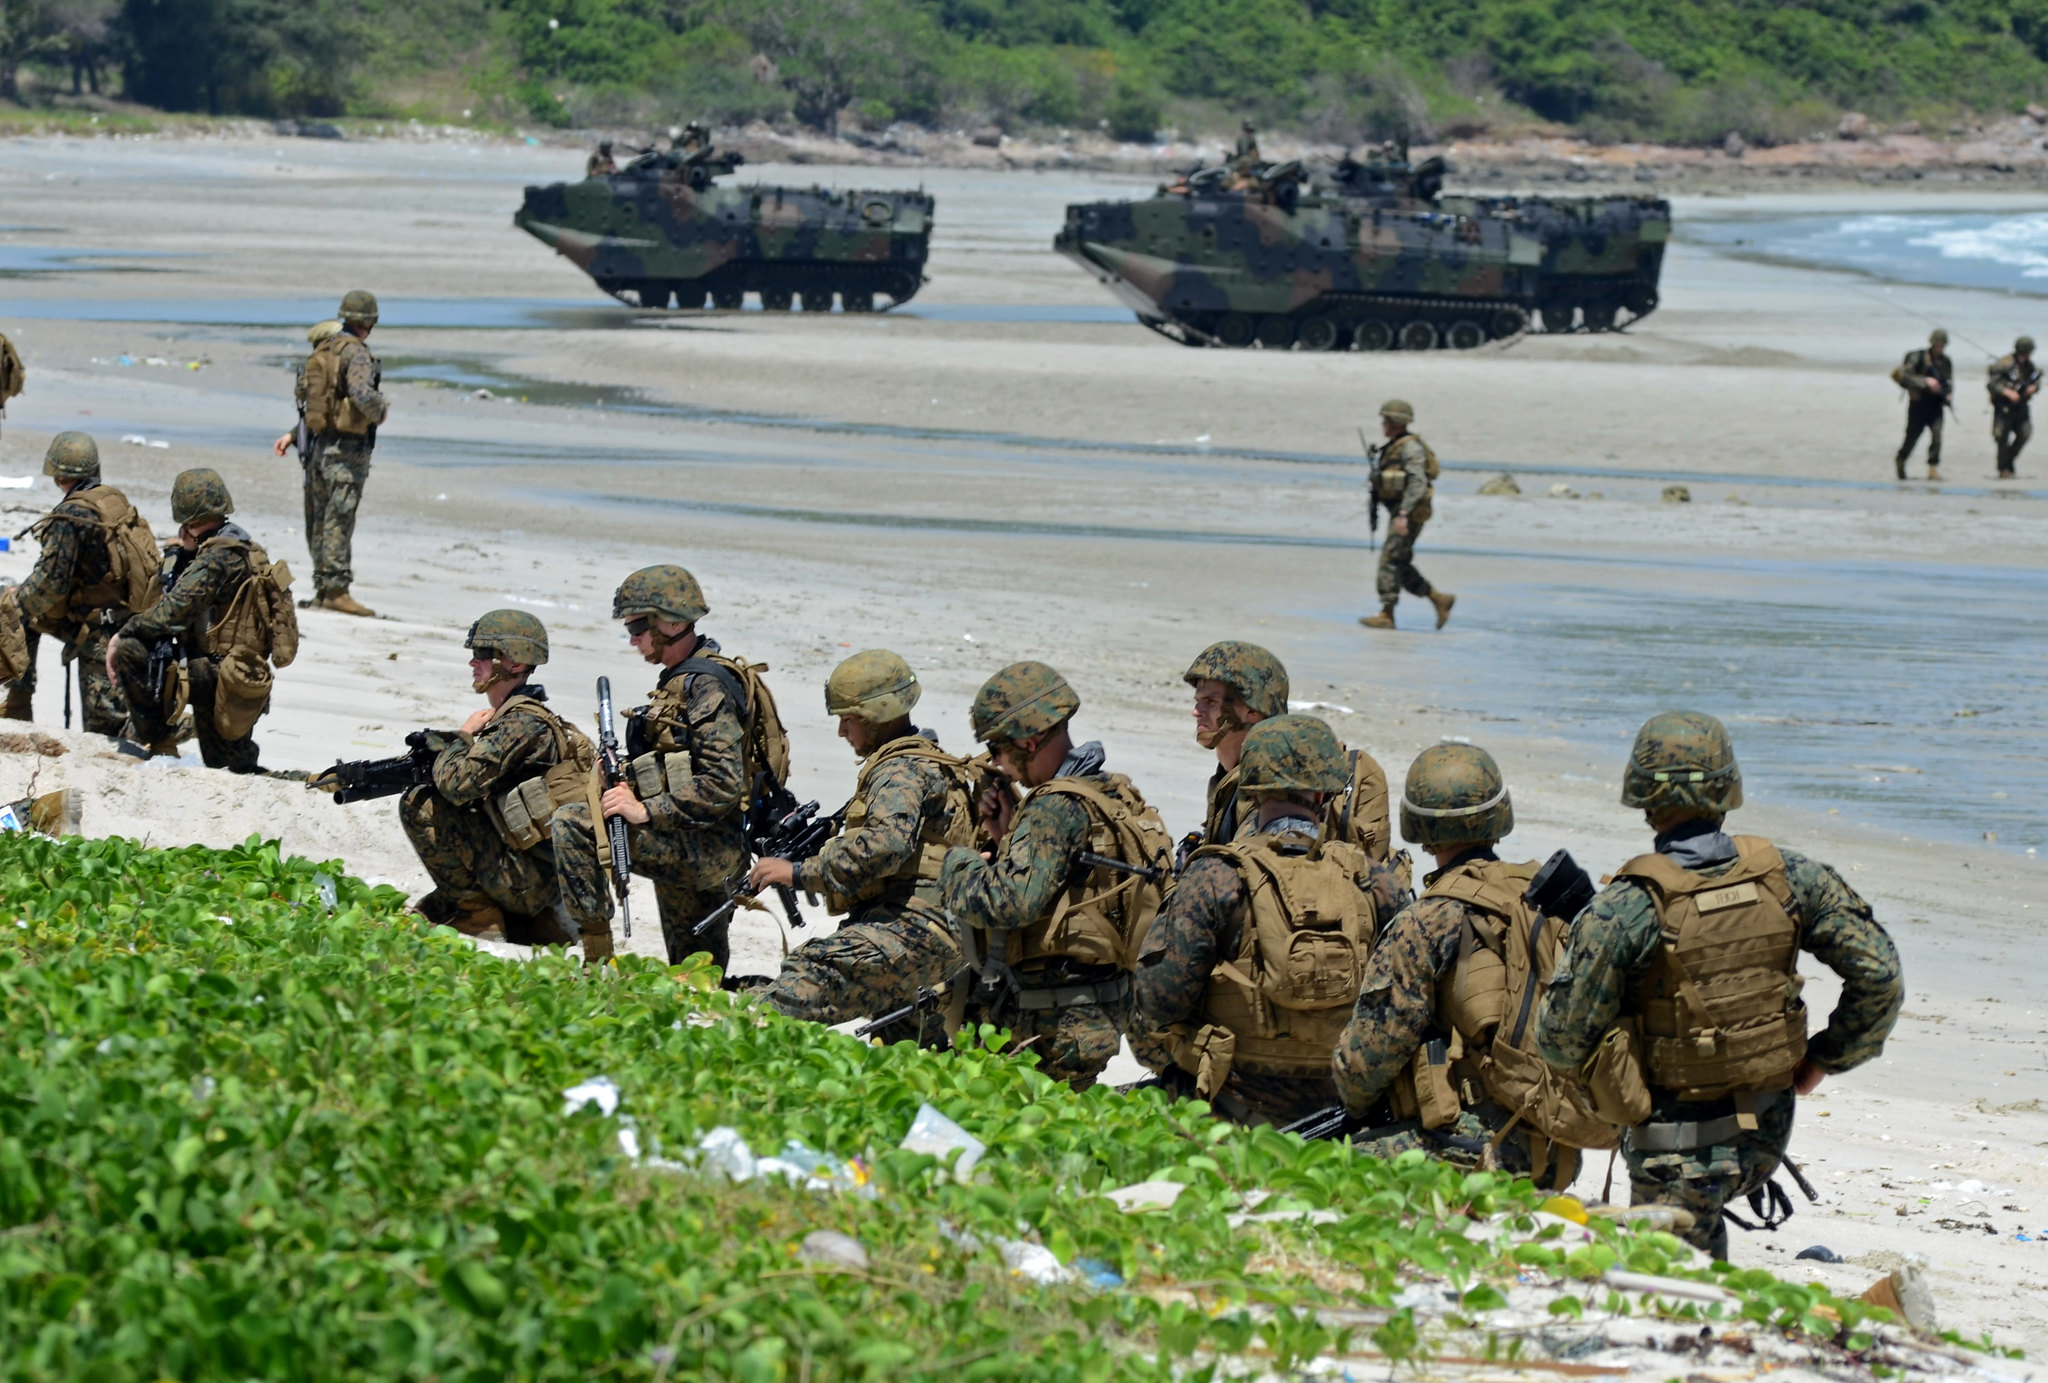 Marines conduct amphibious assault training.